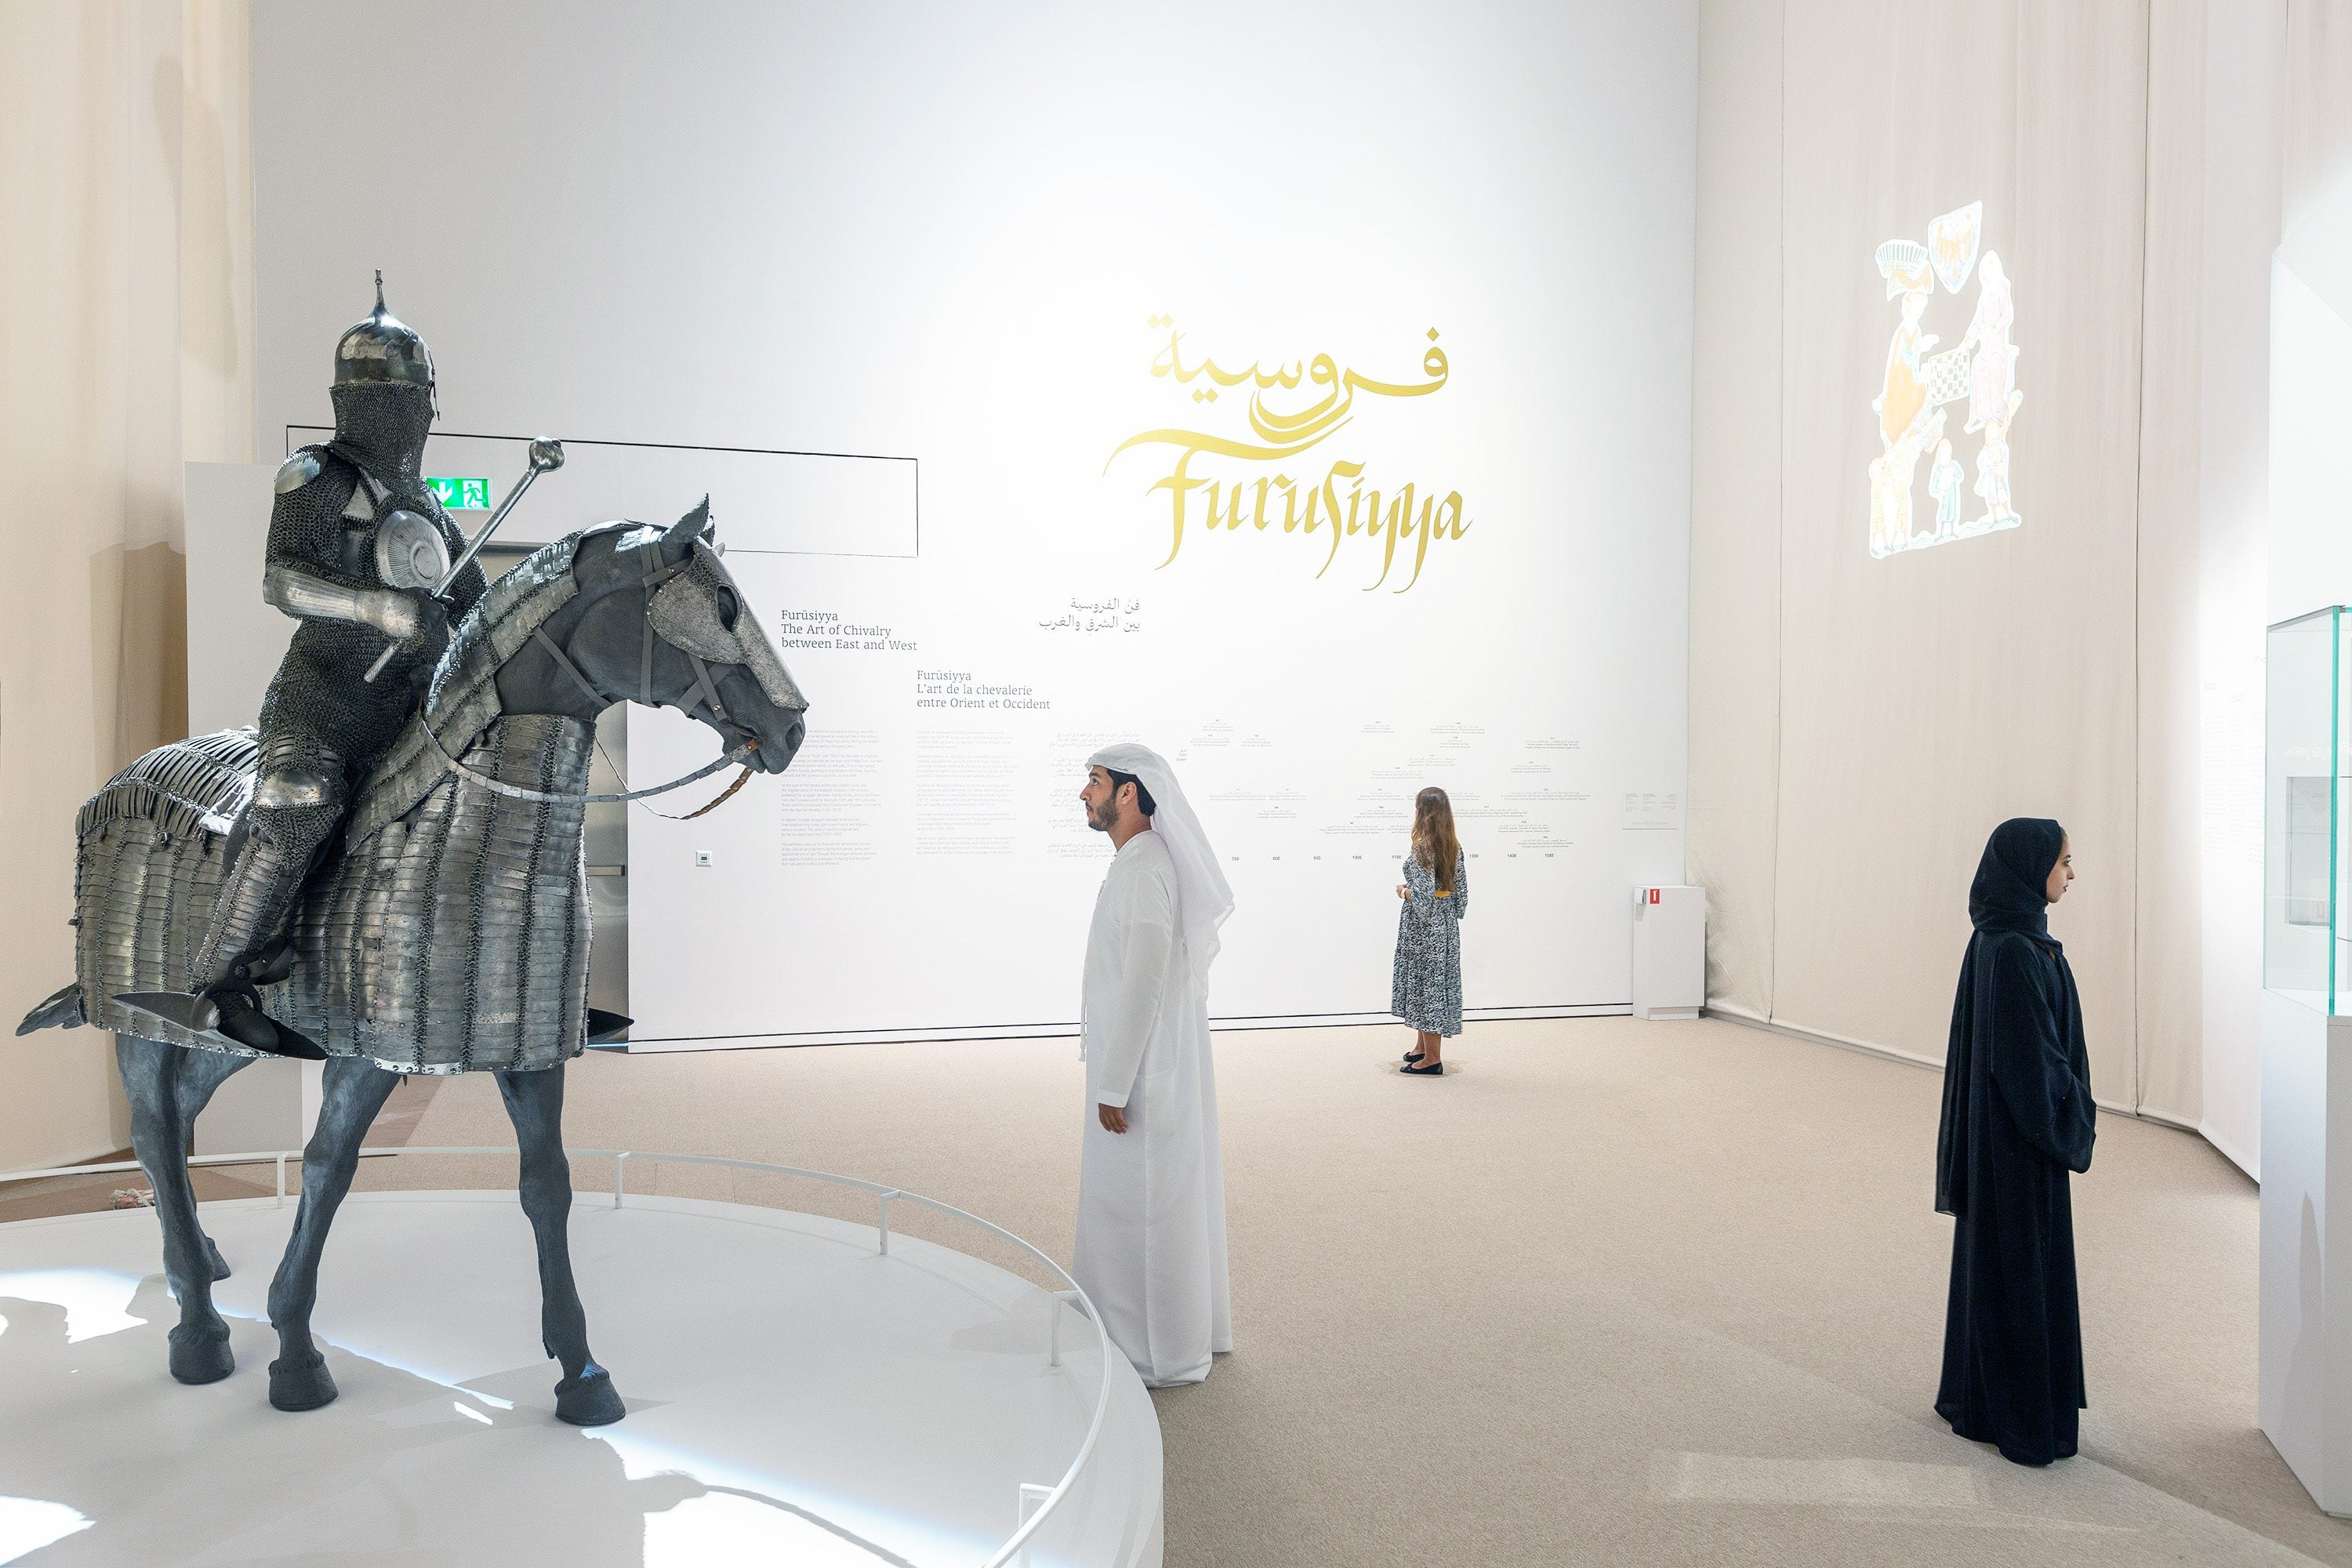 Chivalry exhibition showing armour